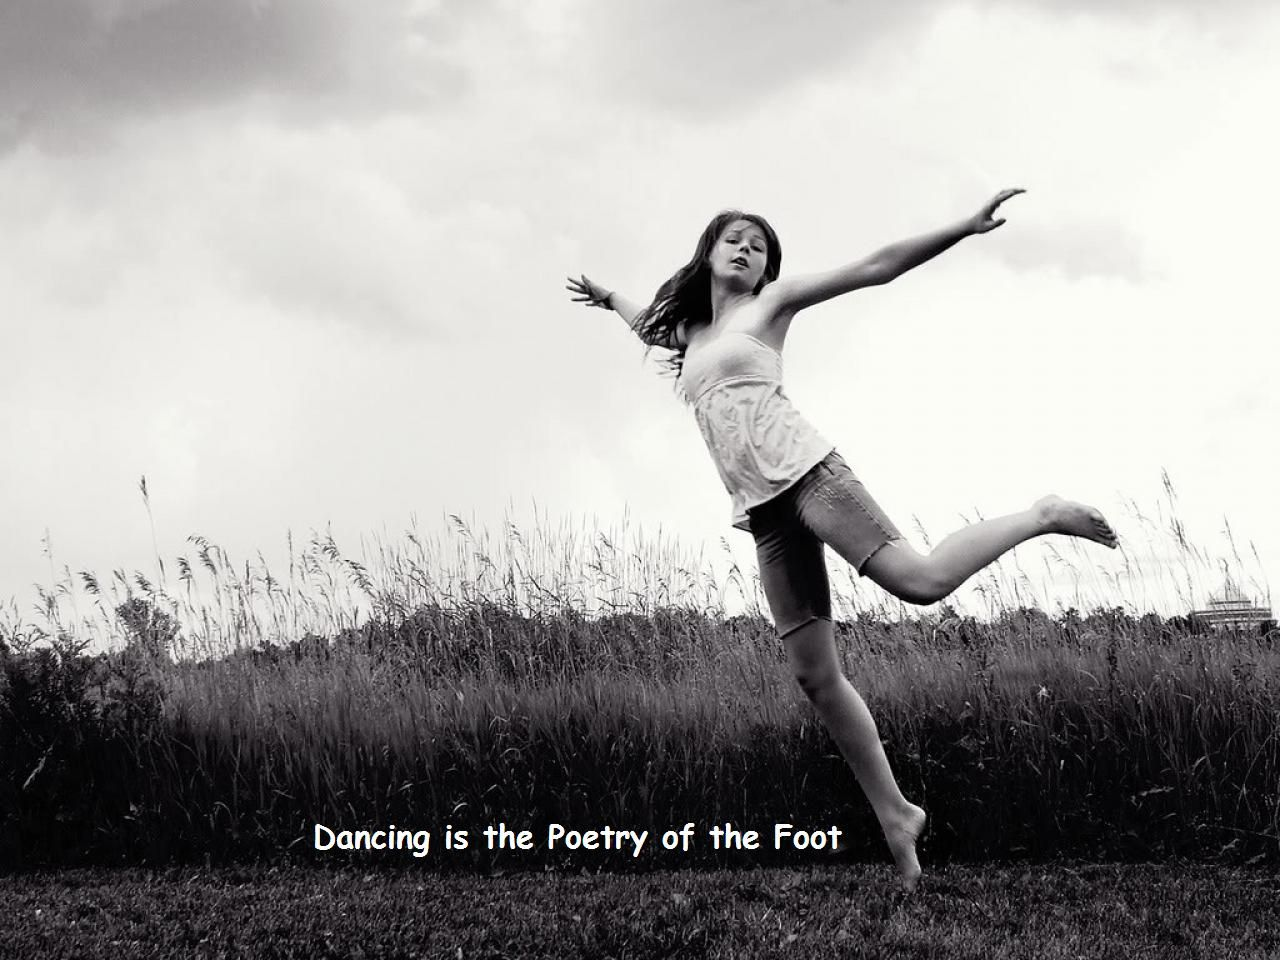 Inspirational Dance Quotes 60 Inspirational Dance Quotes About Dance Ever  Dancing Quotes